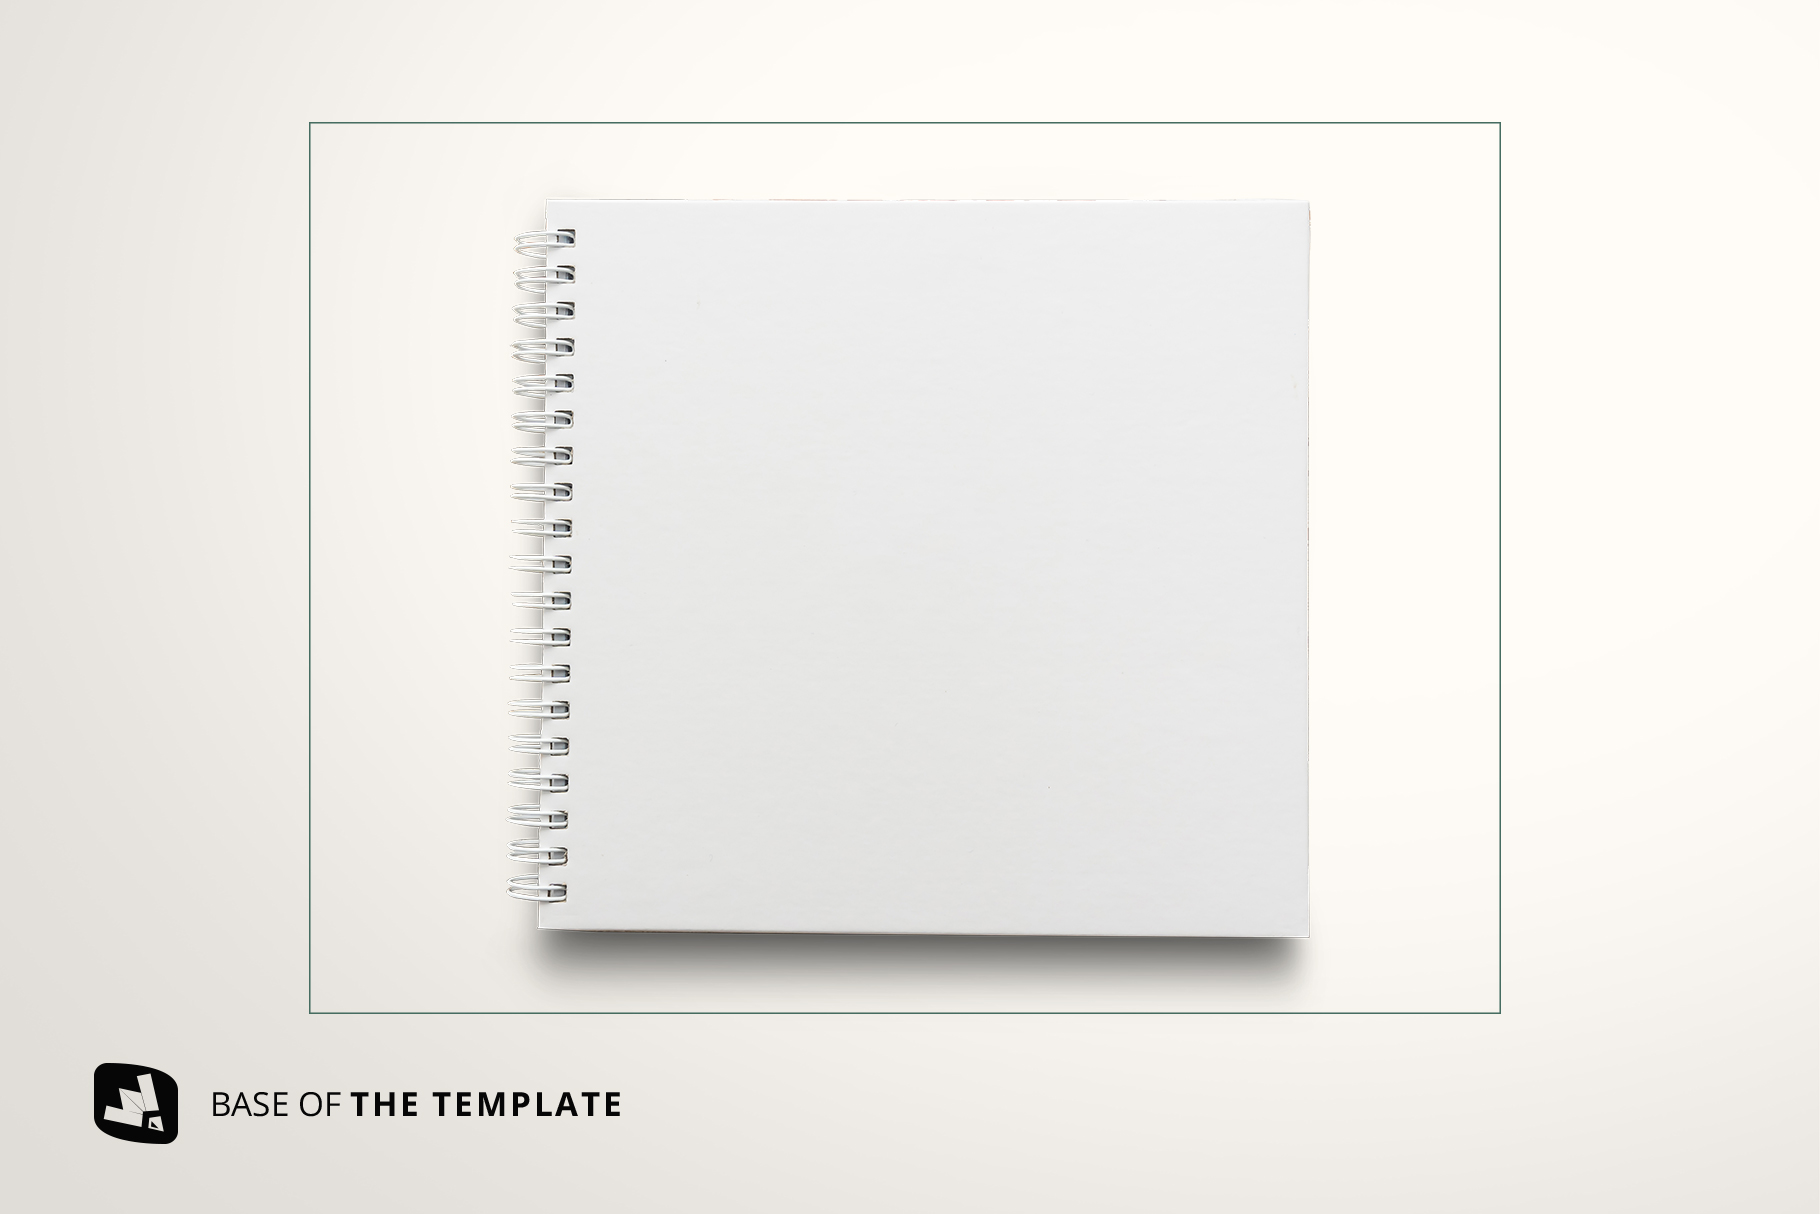 base image of the top view spiral journal cover mockup